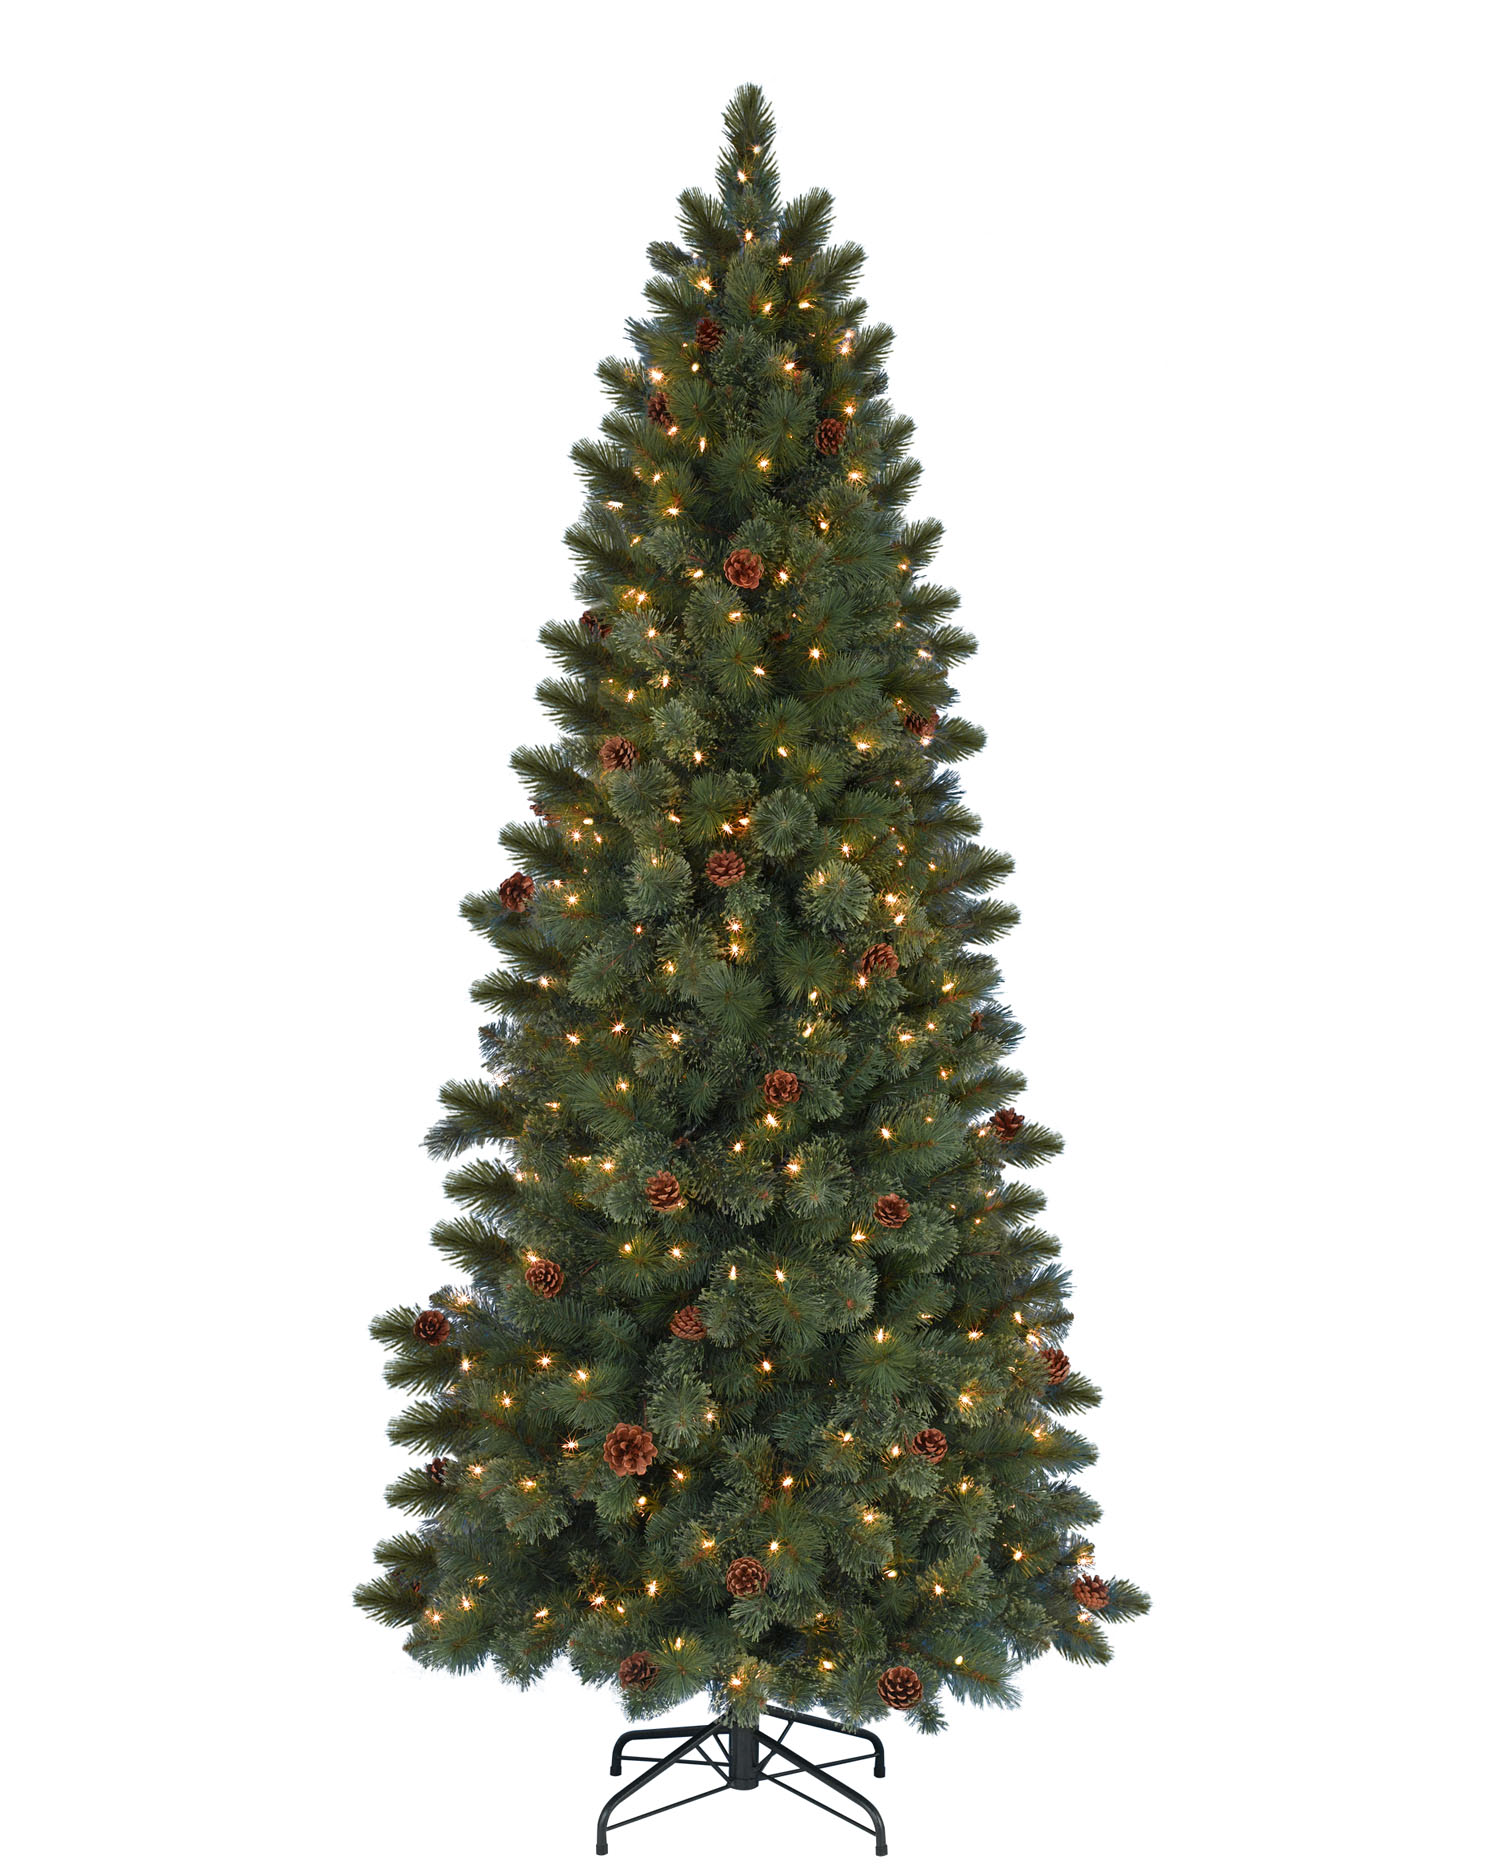 7 foot cashmere clear artificial christmas tree - 2 Foot Christmas Tree